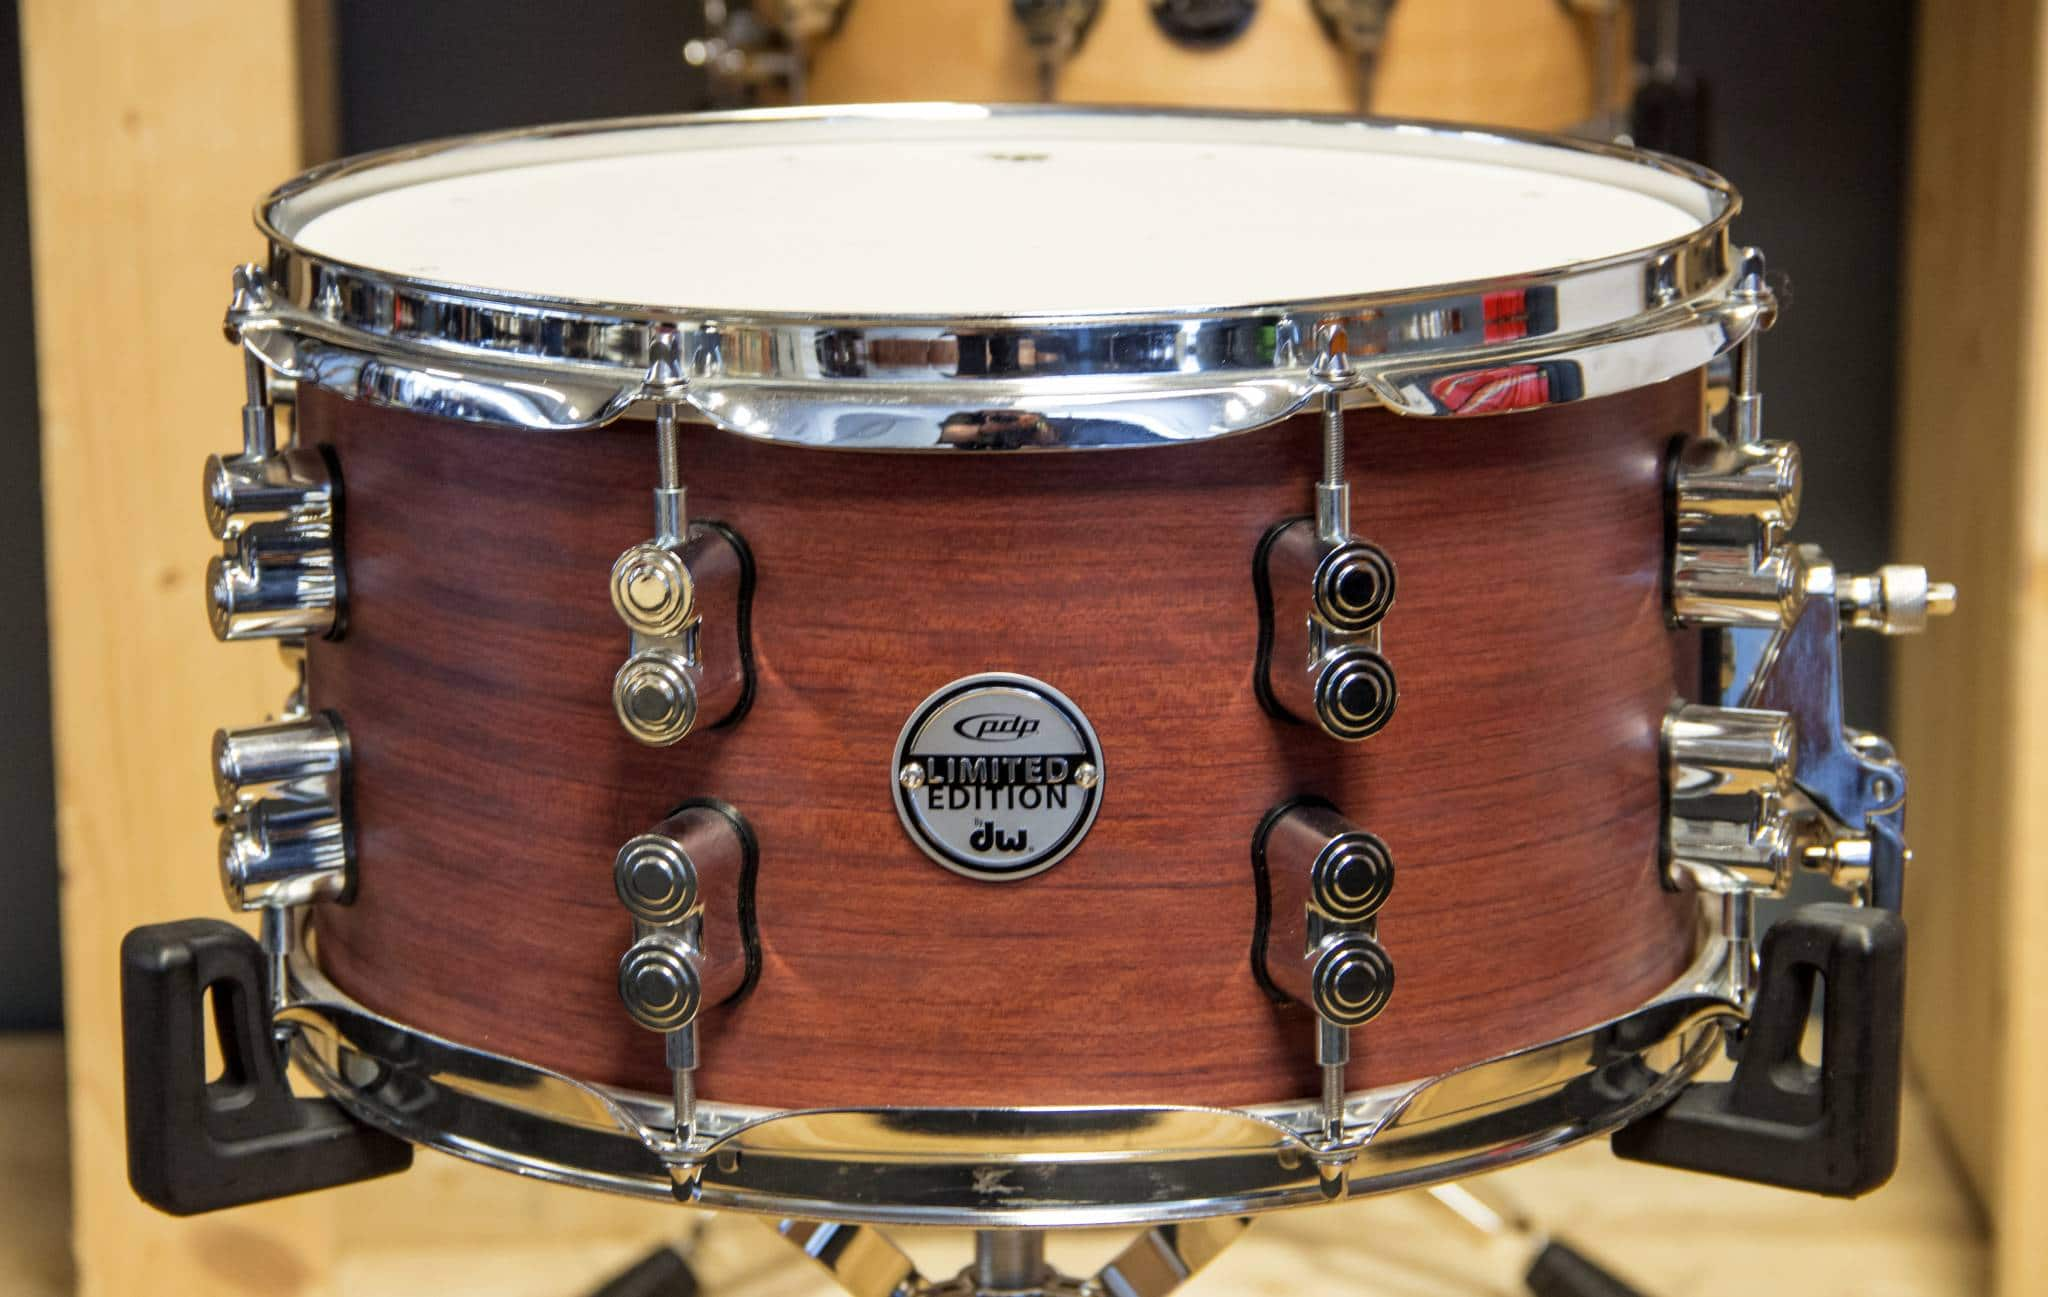 PDP (by DW) Limited Edition Bubinga/Maple/Bubinga snaredrum